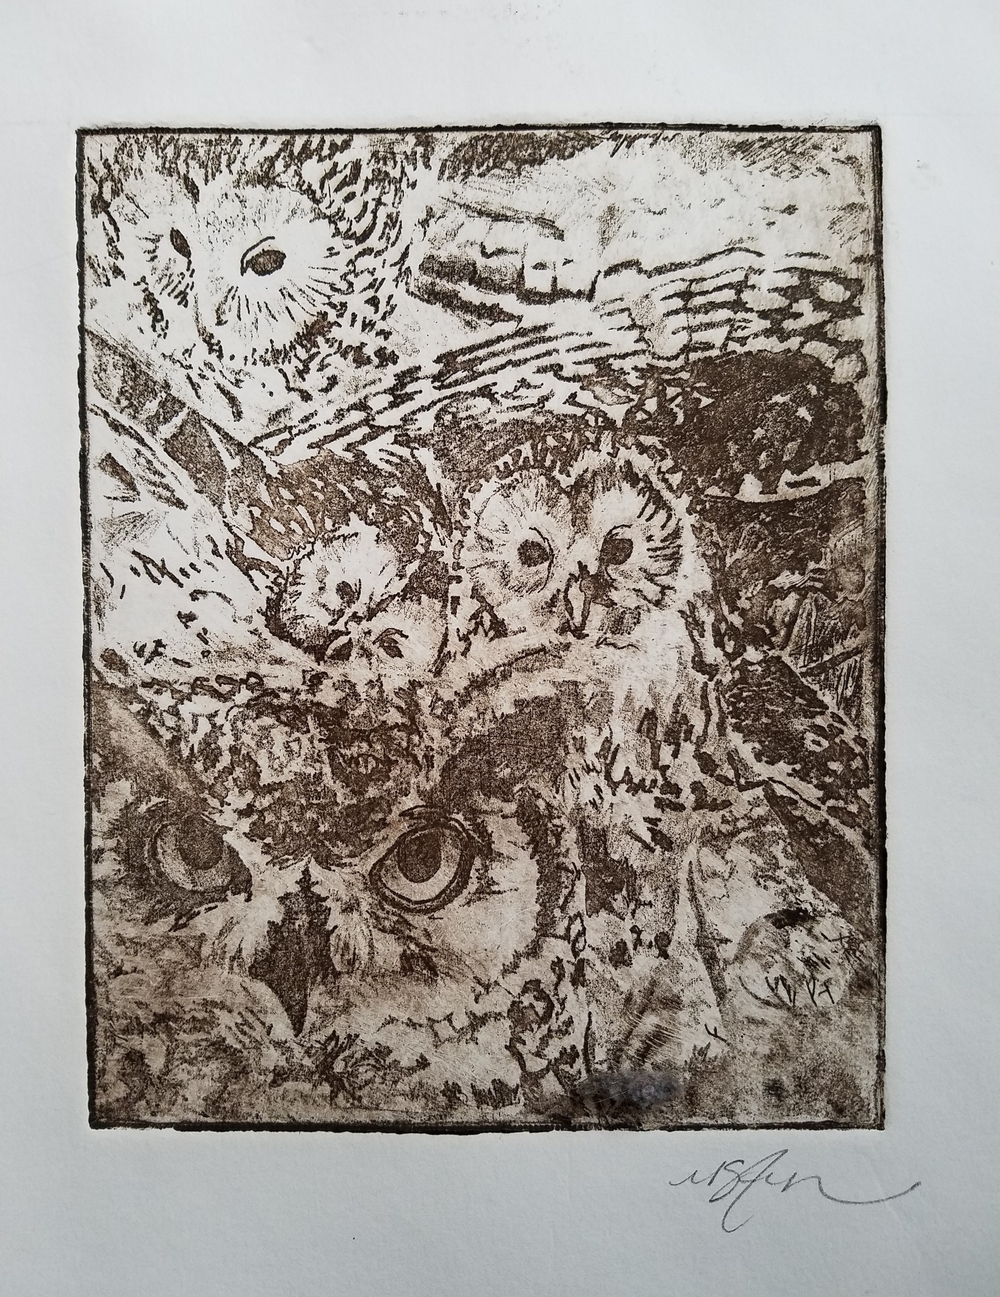 """Collage of Owls"" -2014 Intaglio print on Stonehenge"